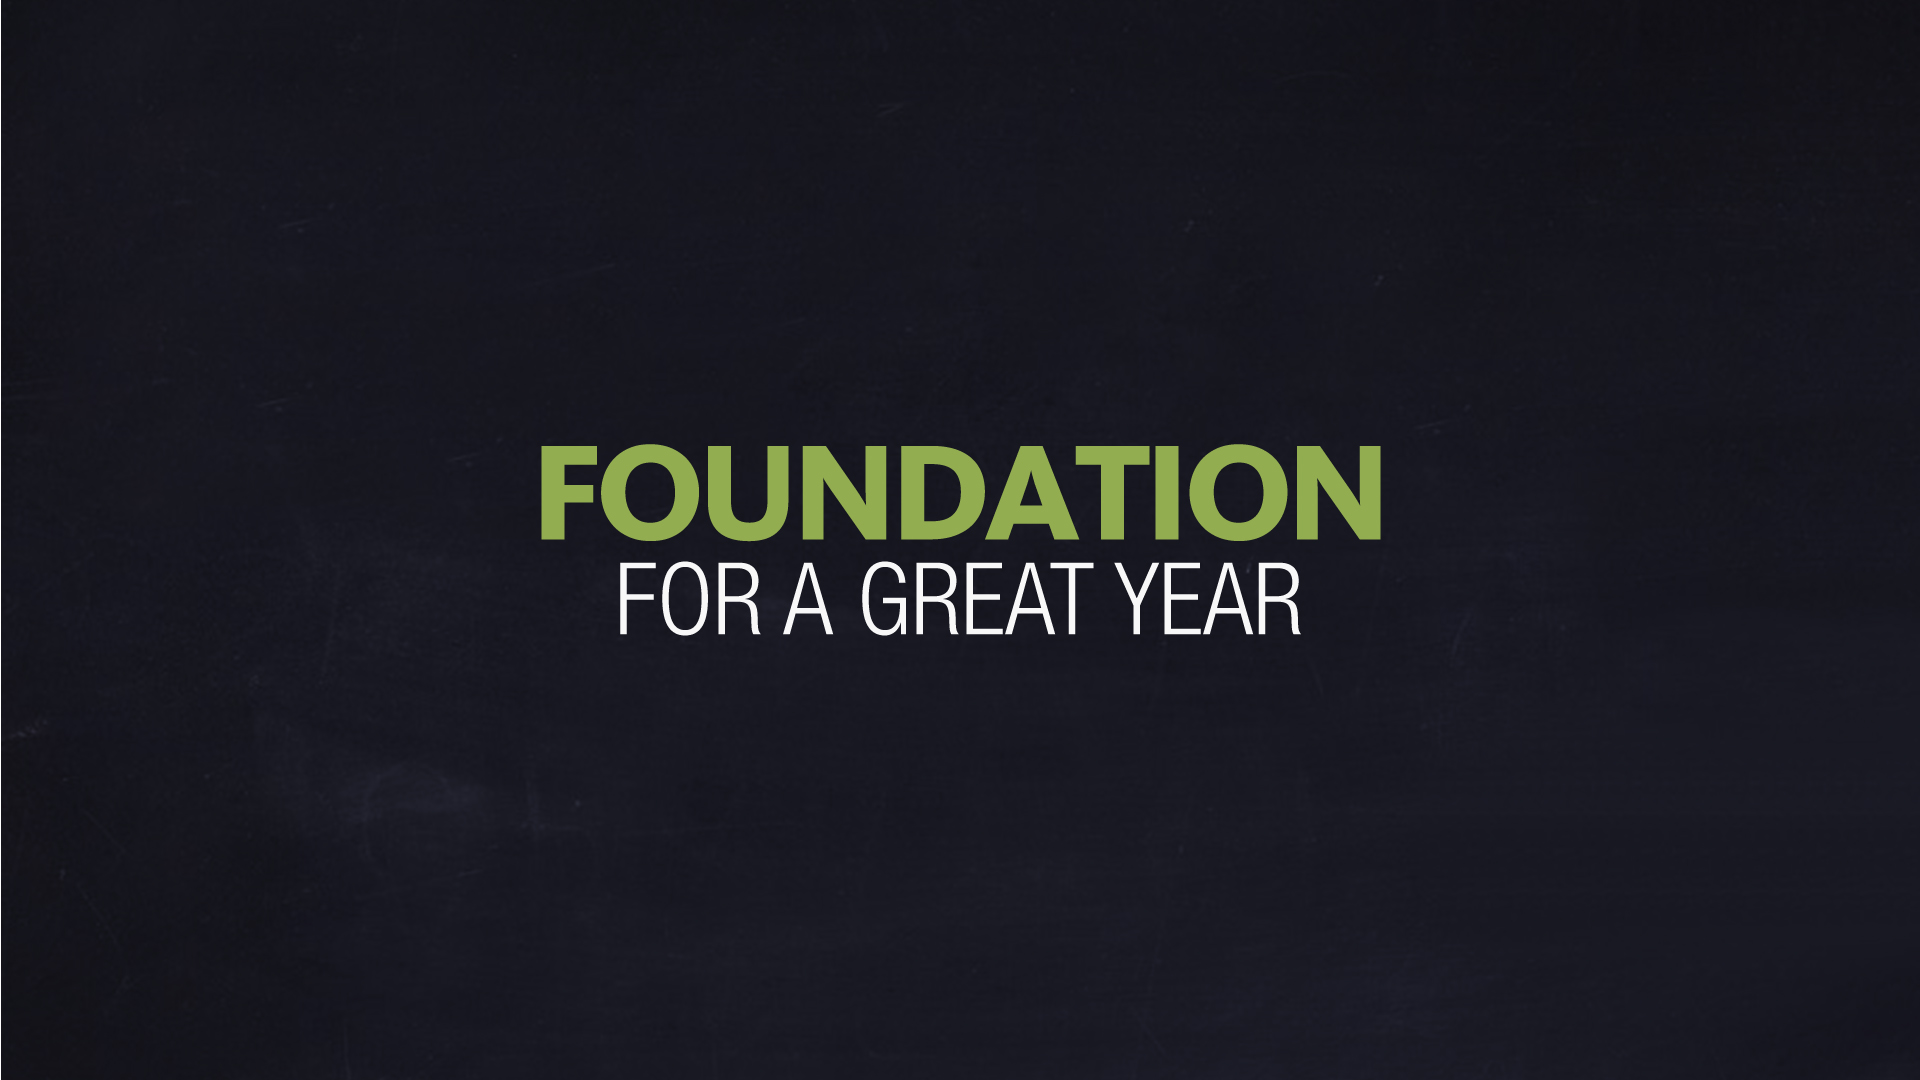 Foundation for a Great Year